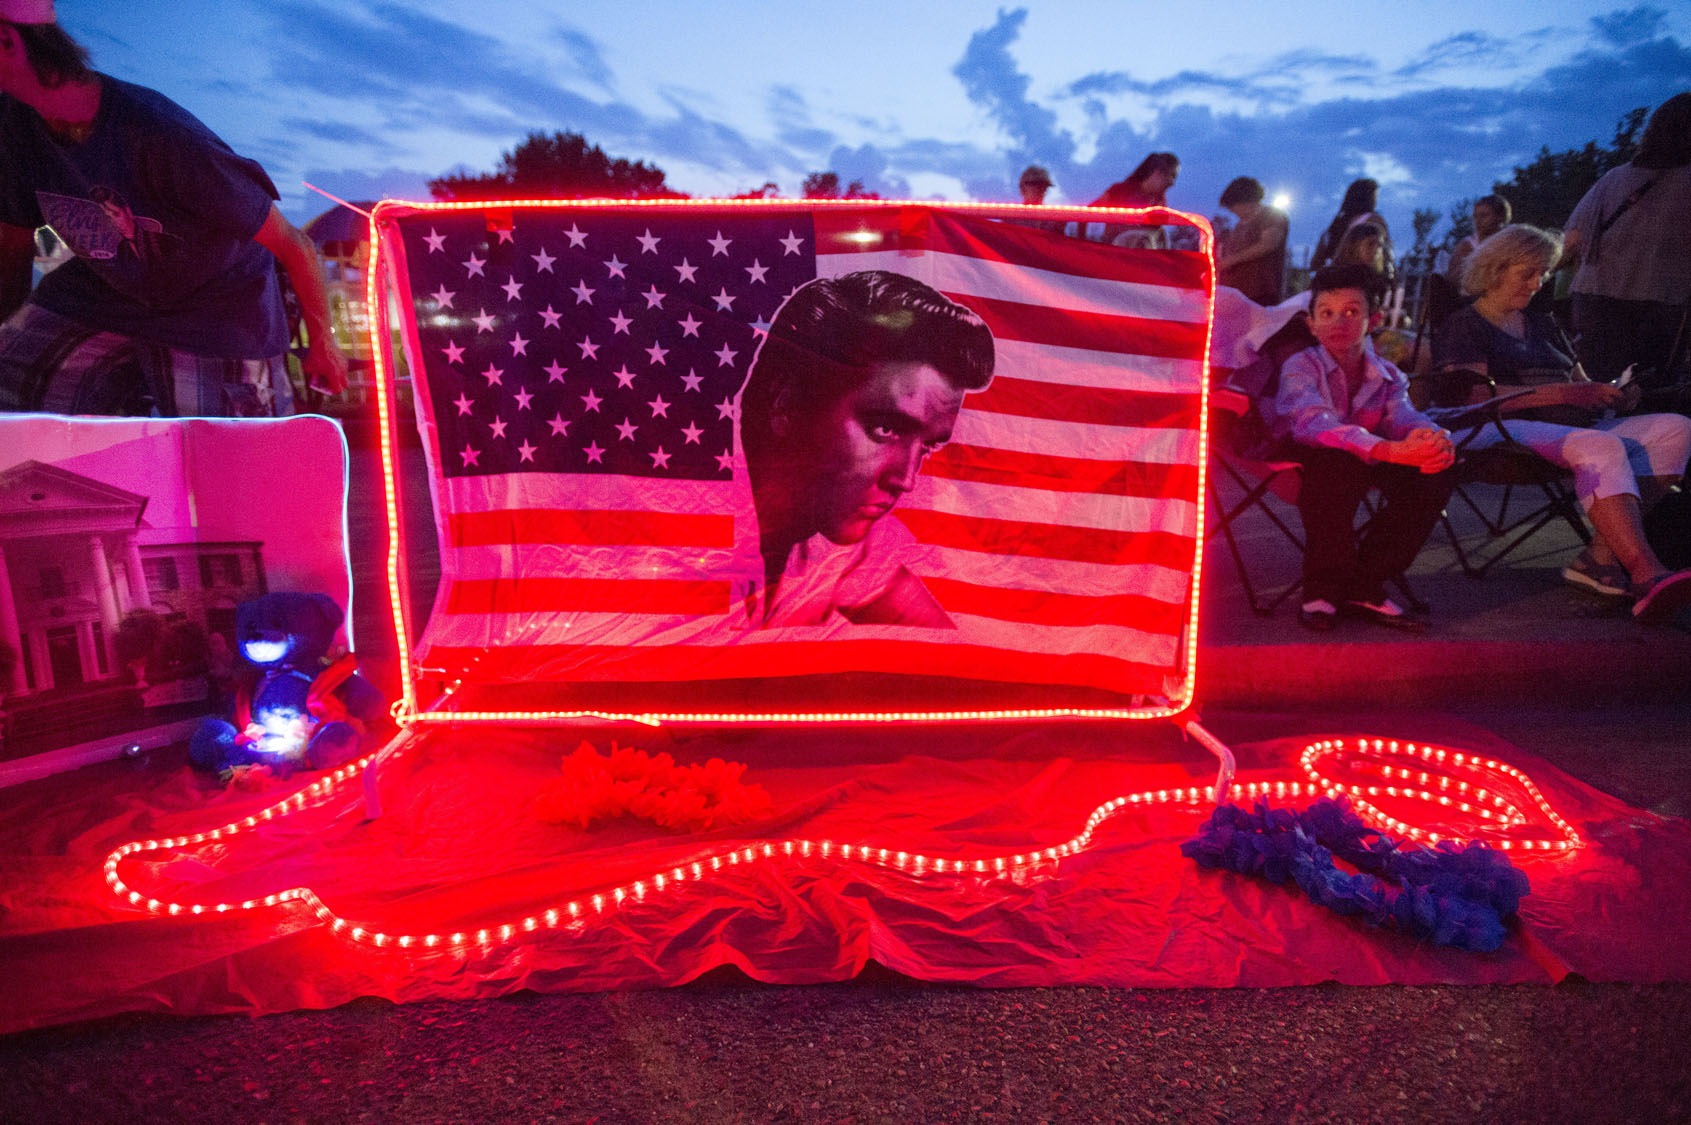 Fans gather at Graceland for 40th anniversary of Elvis' death